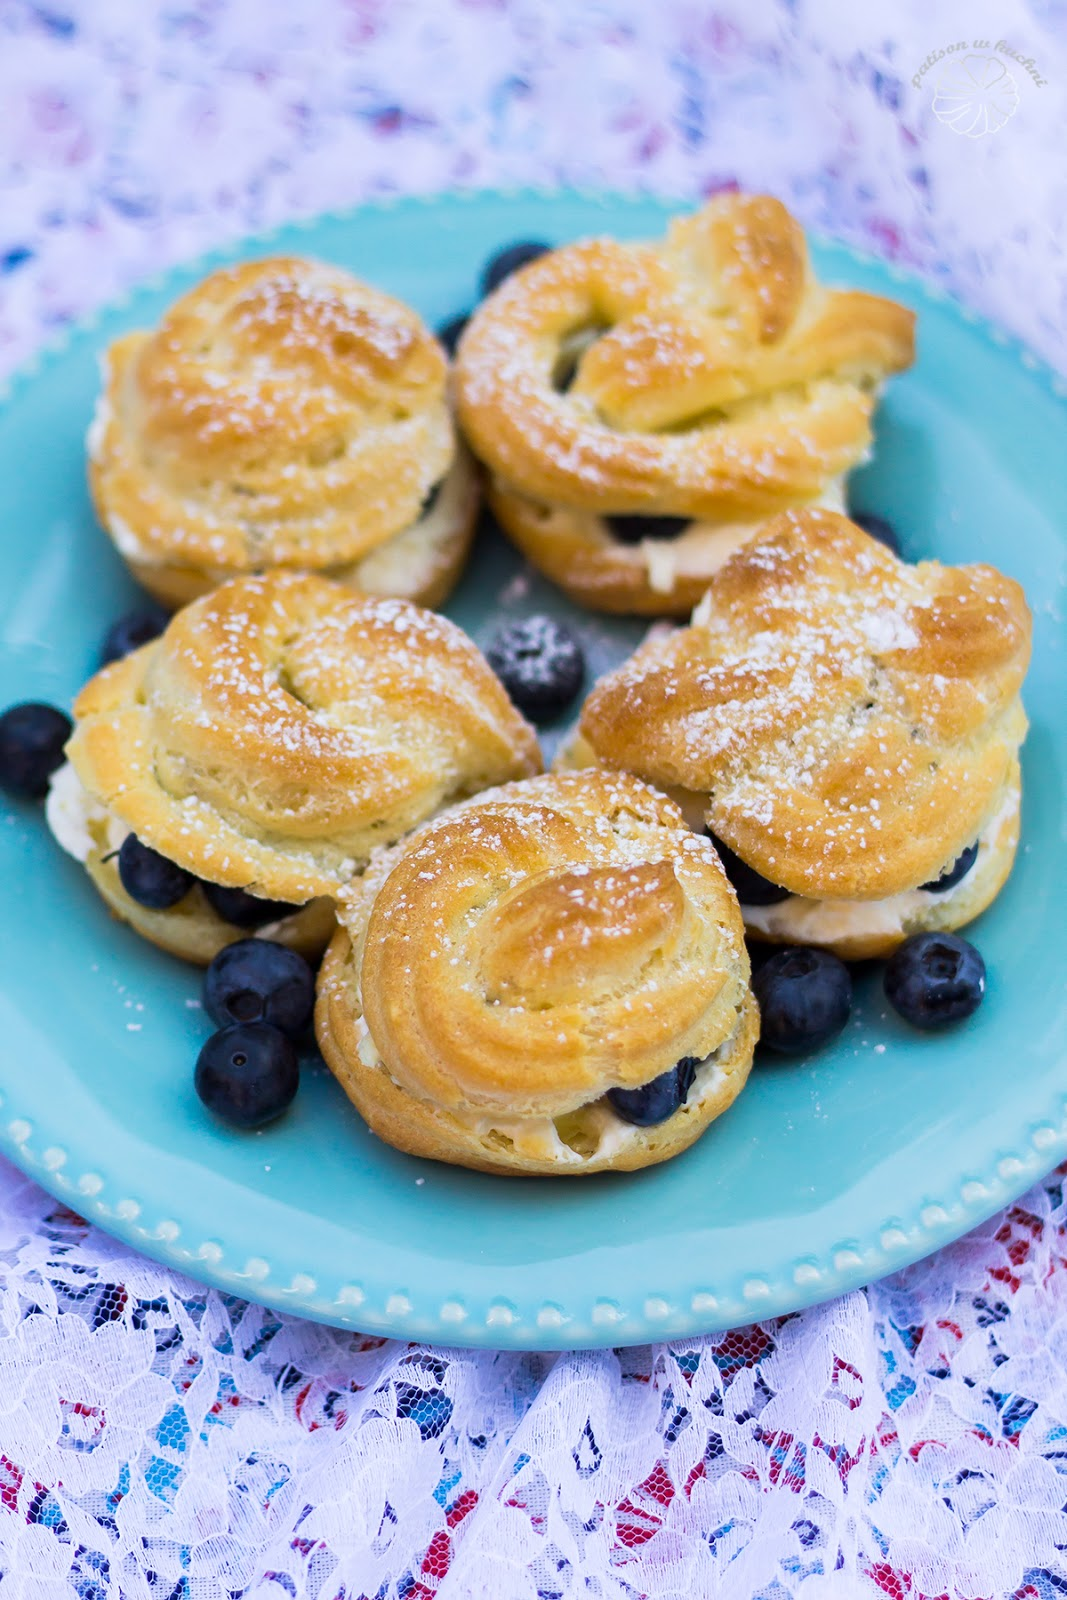 Puff pastry with whipped cream and blueberries.